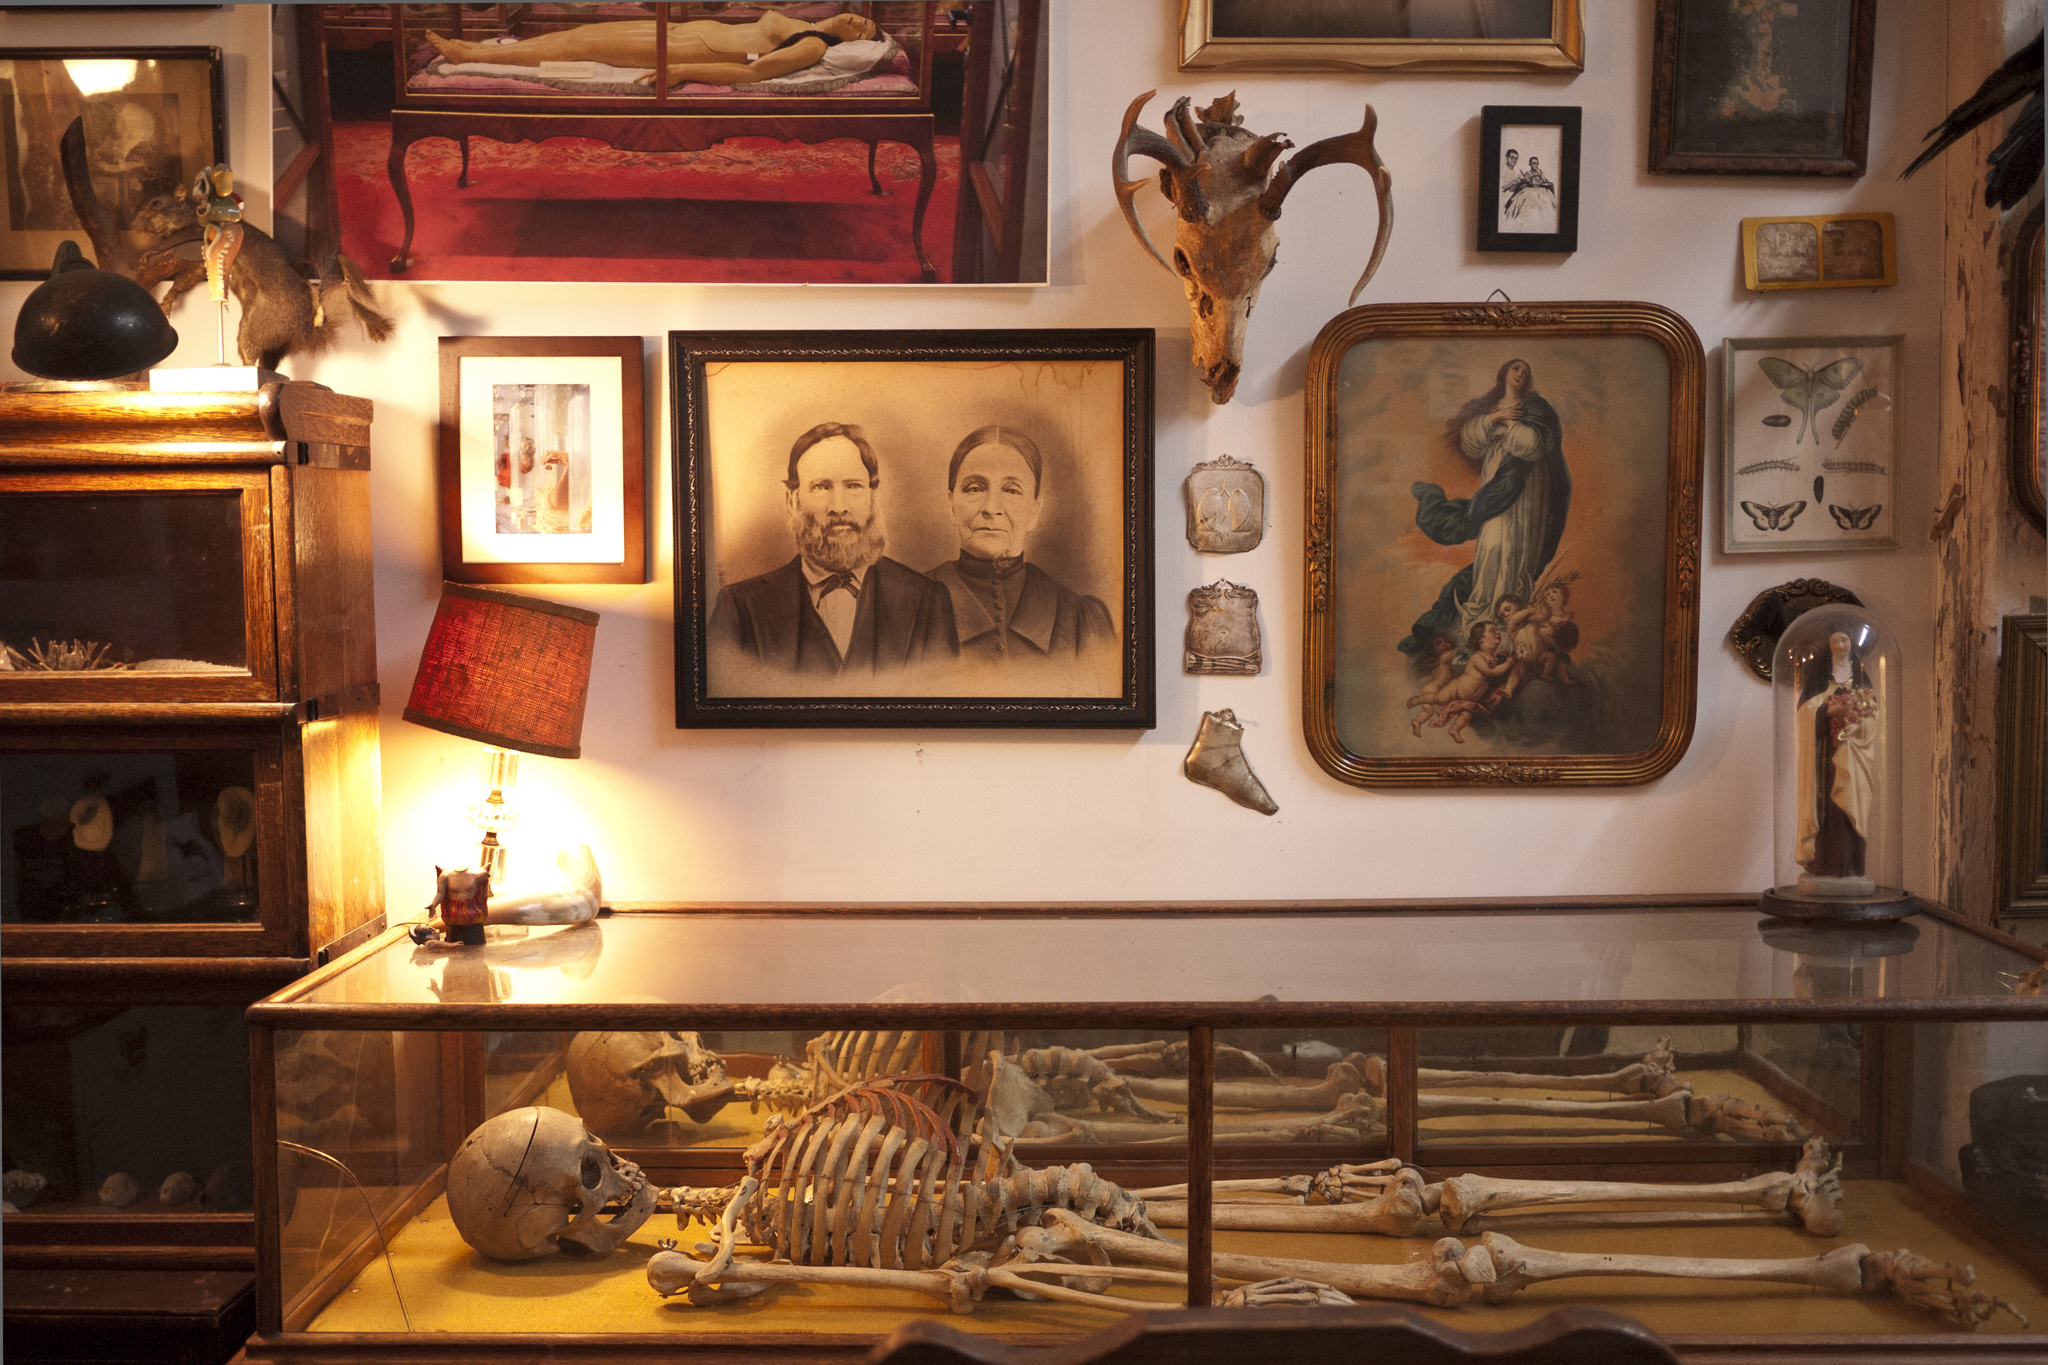 The Morbid Anatomy Anthology | Things to do in New York